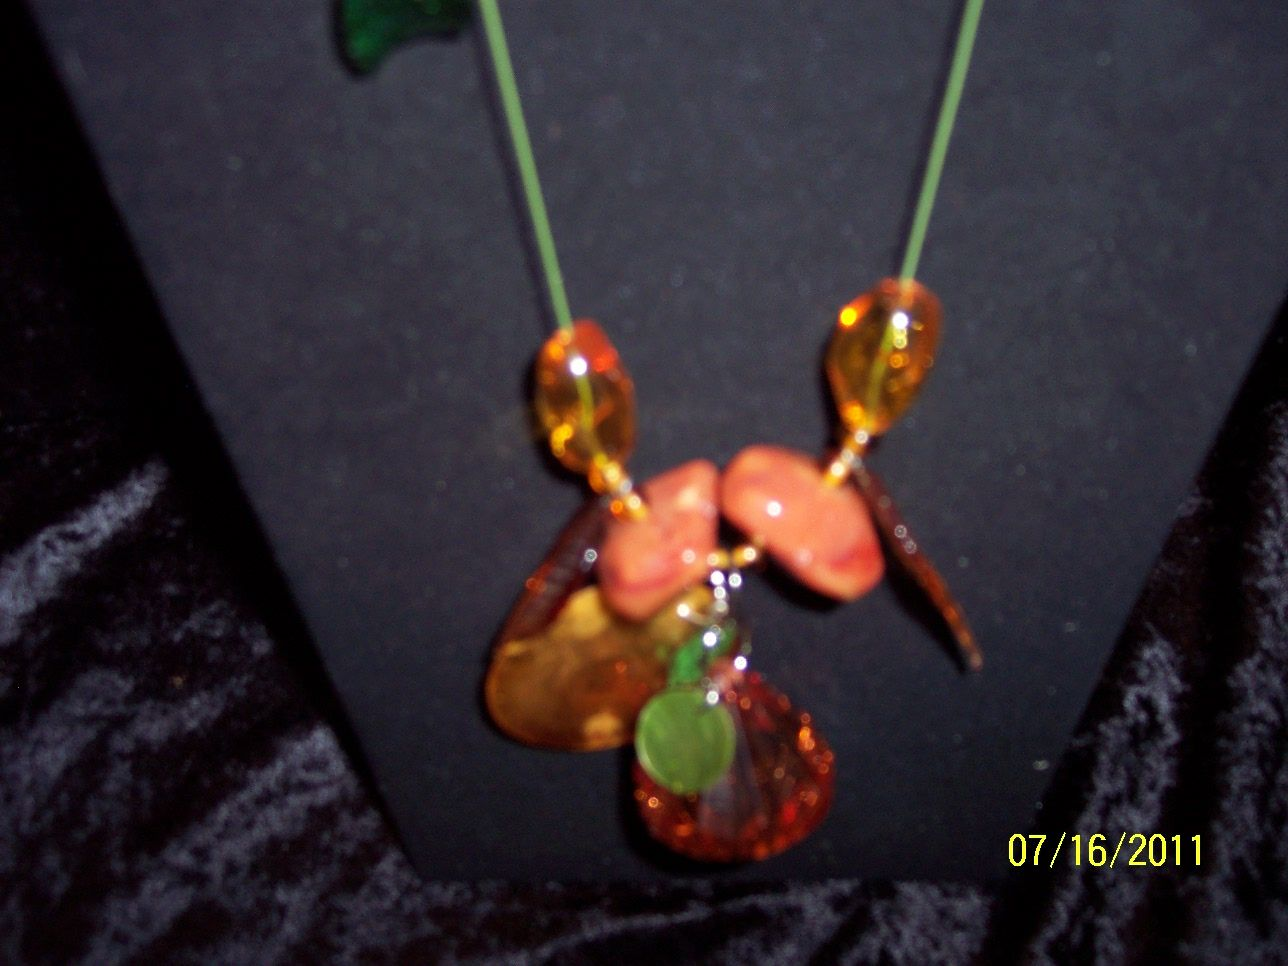 NICE FESTIVE AUTUMN NECKLACE CHUNKY LONG 26 INCHES 16.00